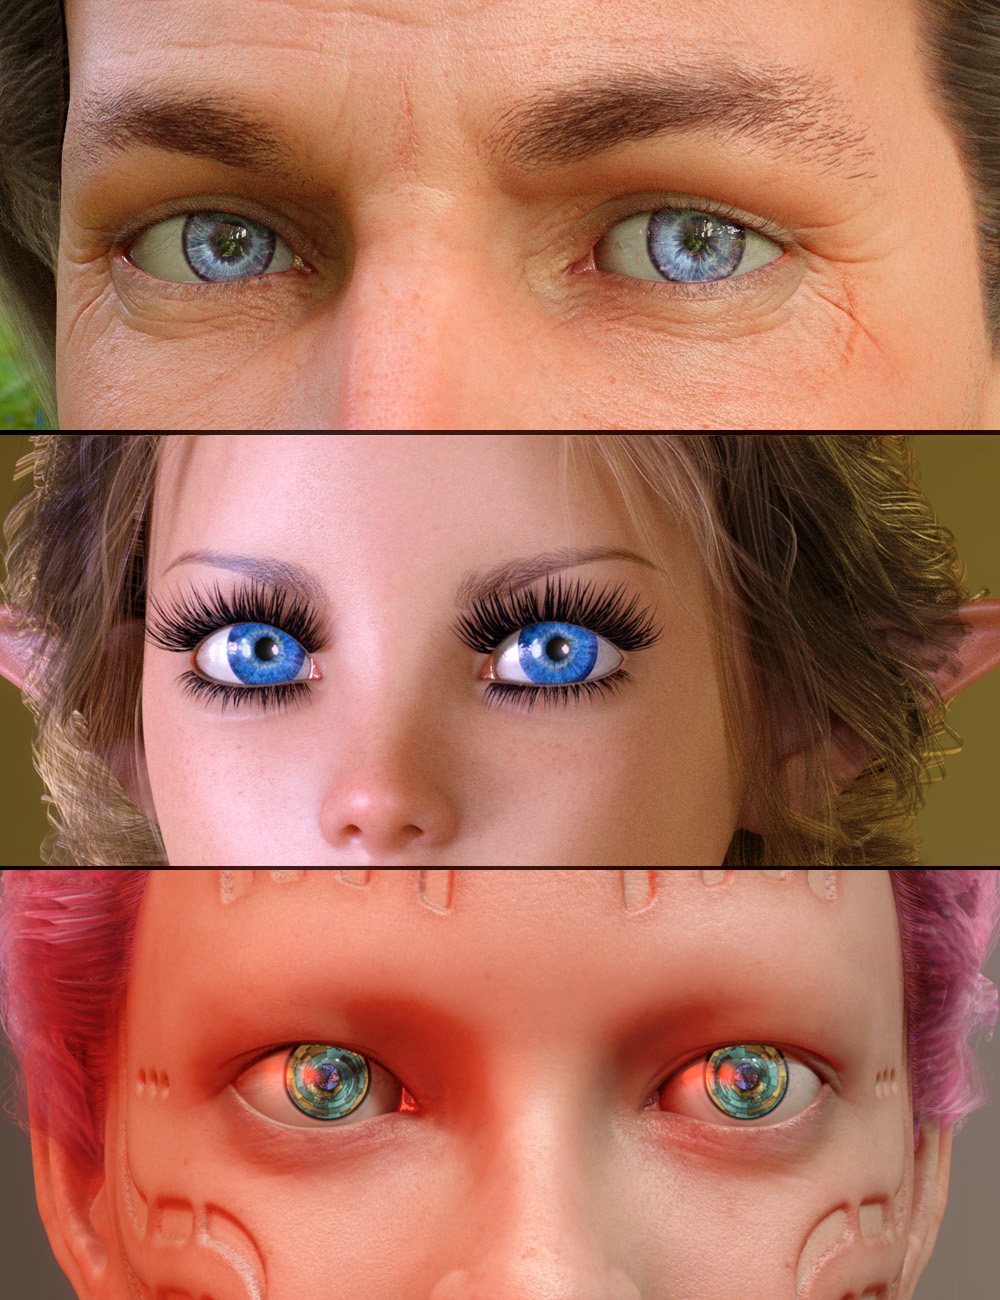 Ultimate Eyes for Genesis 8 by: PhilW, 3D Models by Daz 3D